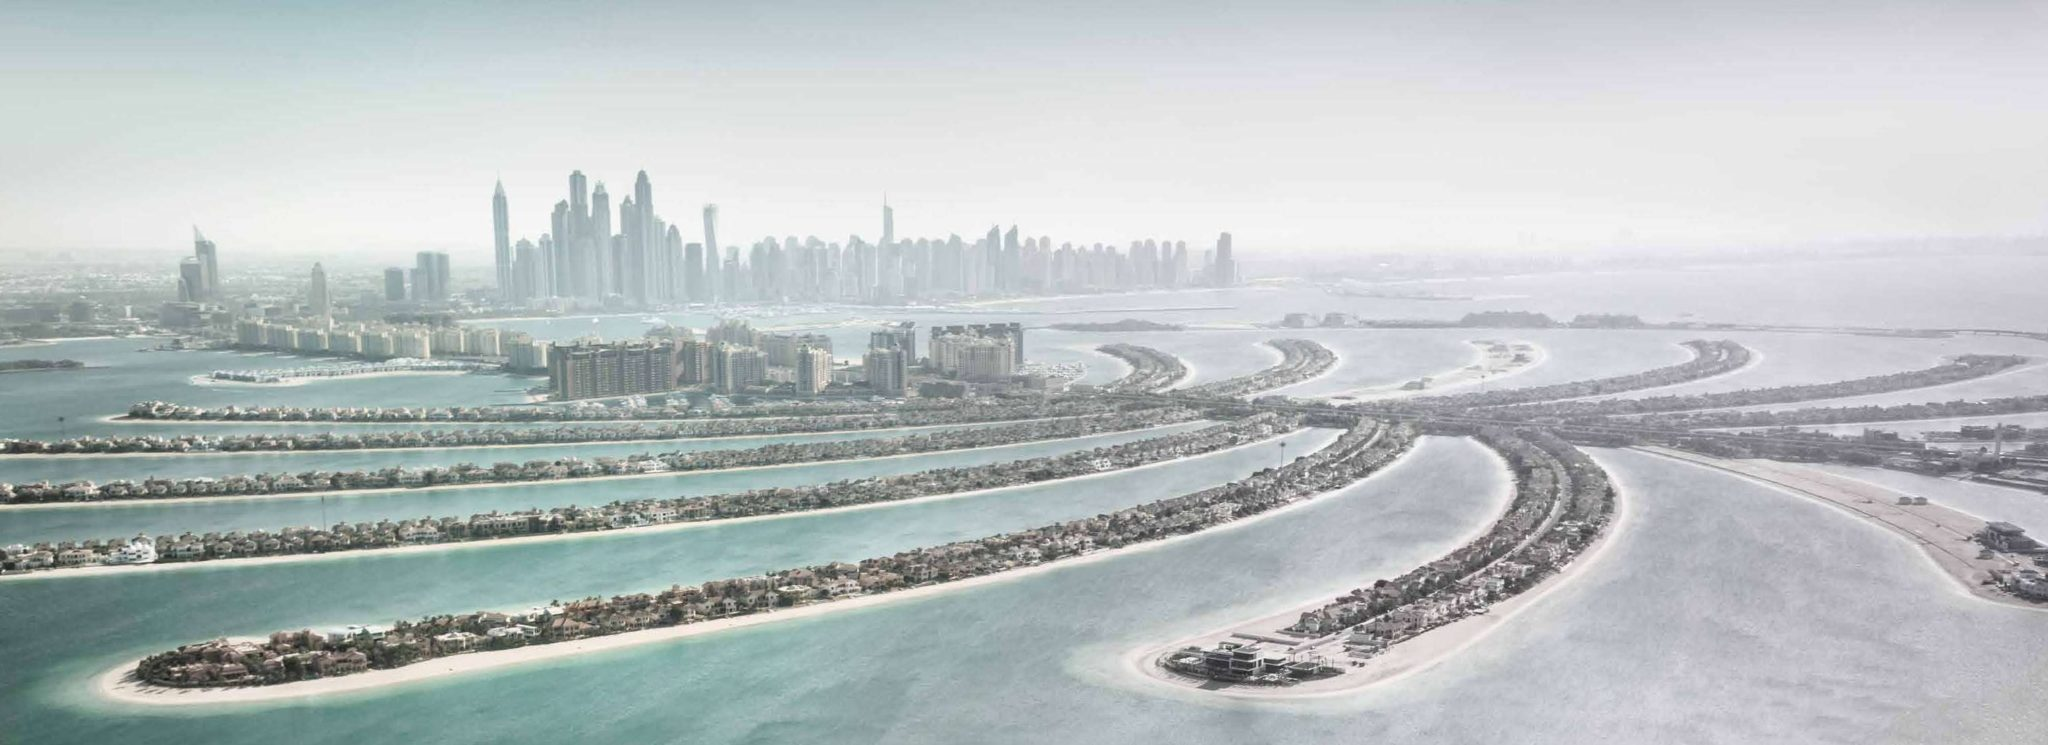 Palm Jumeirah - a destination in itself